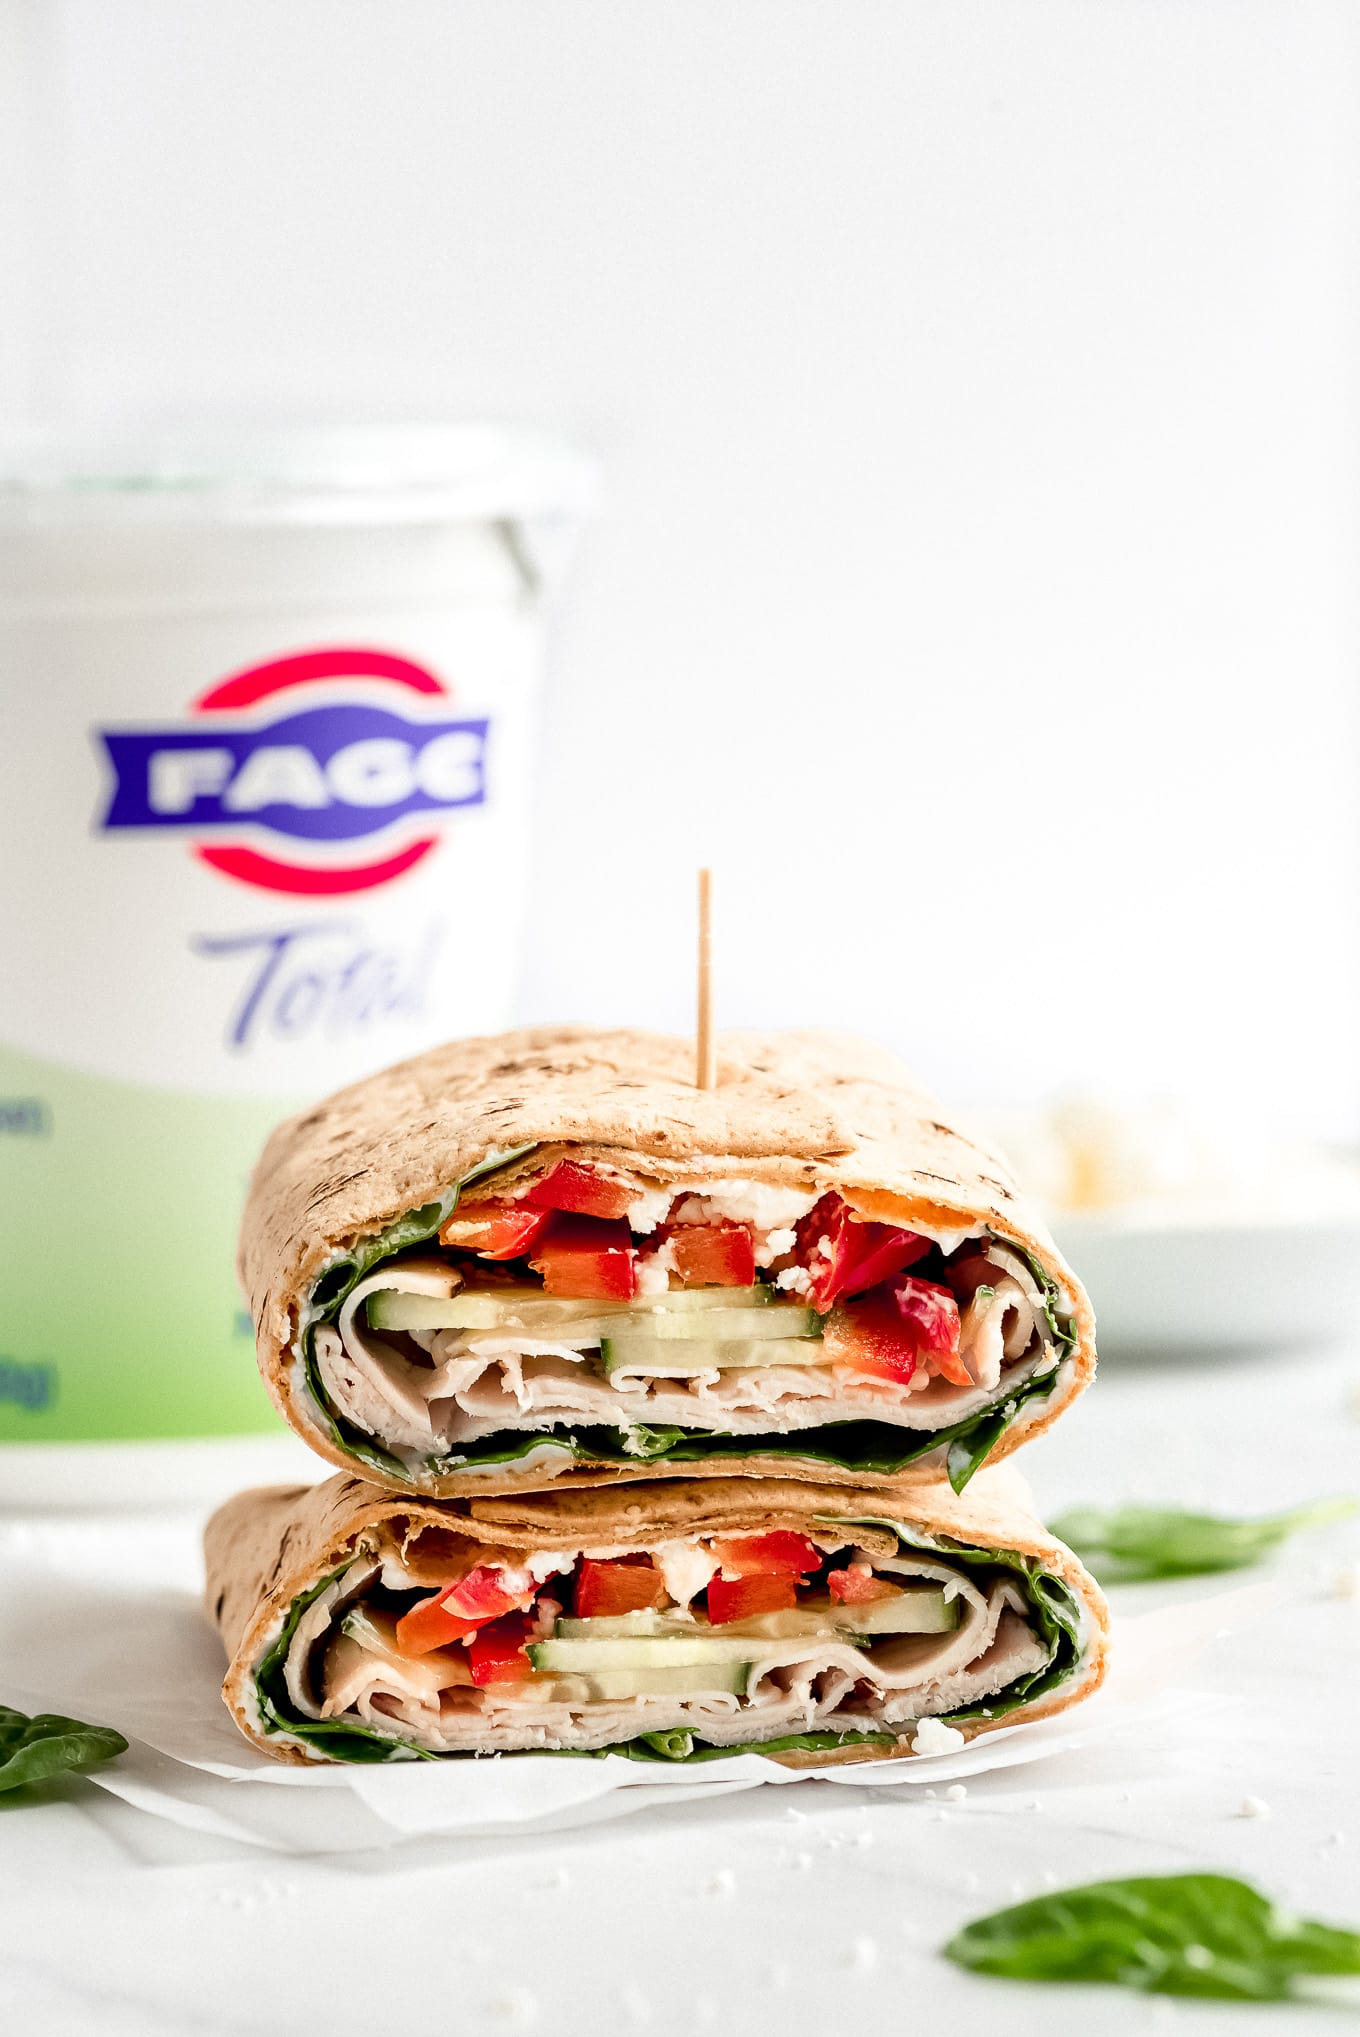 Two halves of a Turkey Ranch Wrap are stacked on top of each other showing the inside full of veggies, turkey, and a Greek yogurt ranch sauce.